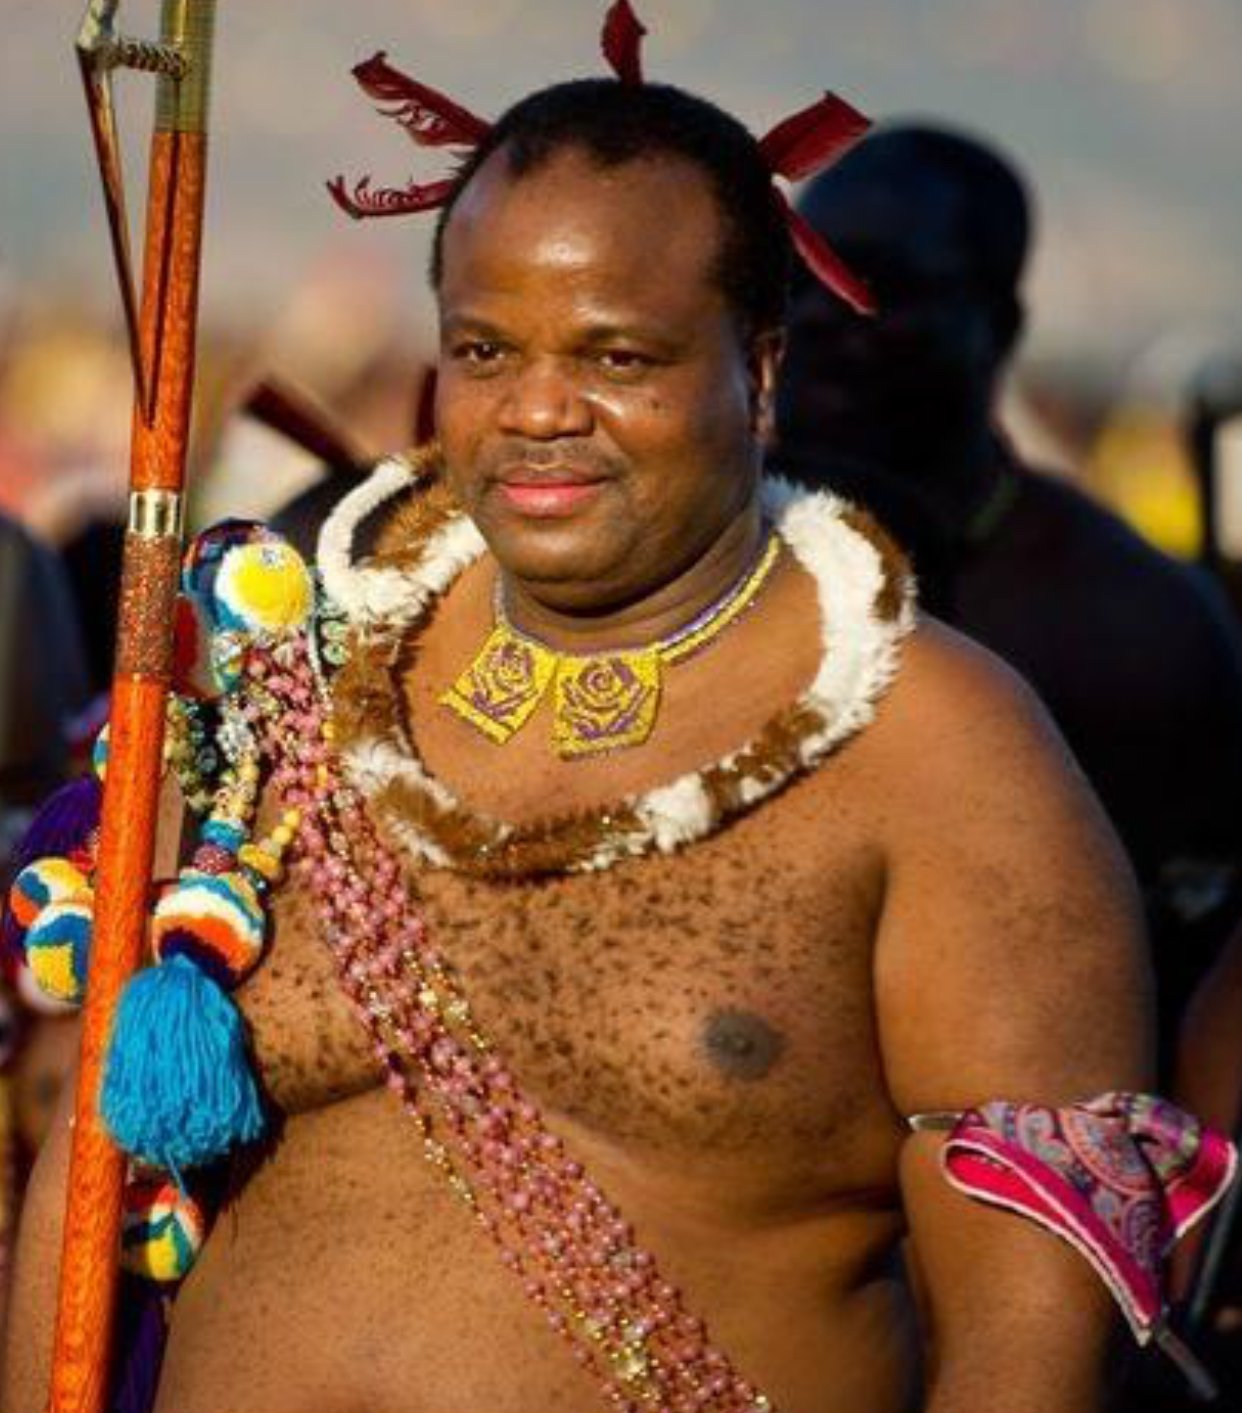 King Mswati bans alcohol, frustrates liquor investors over multi-million shares